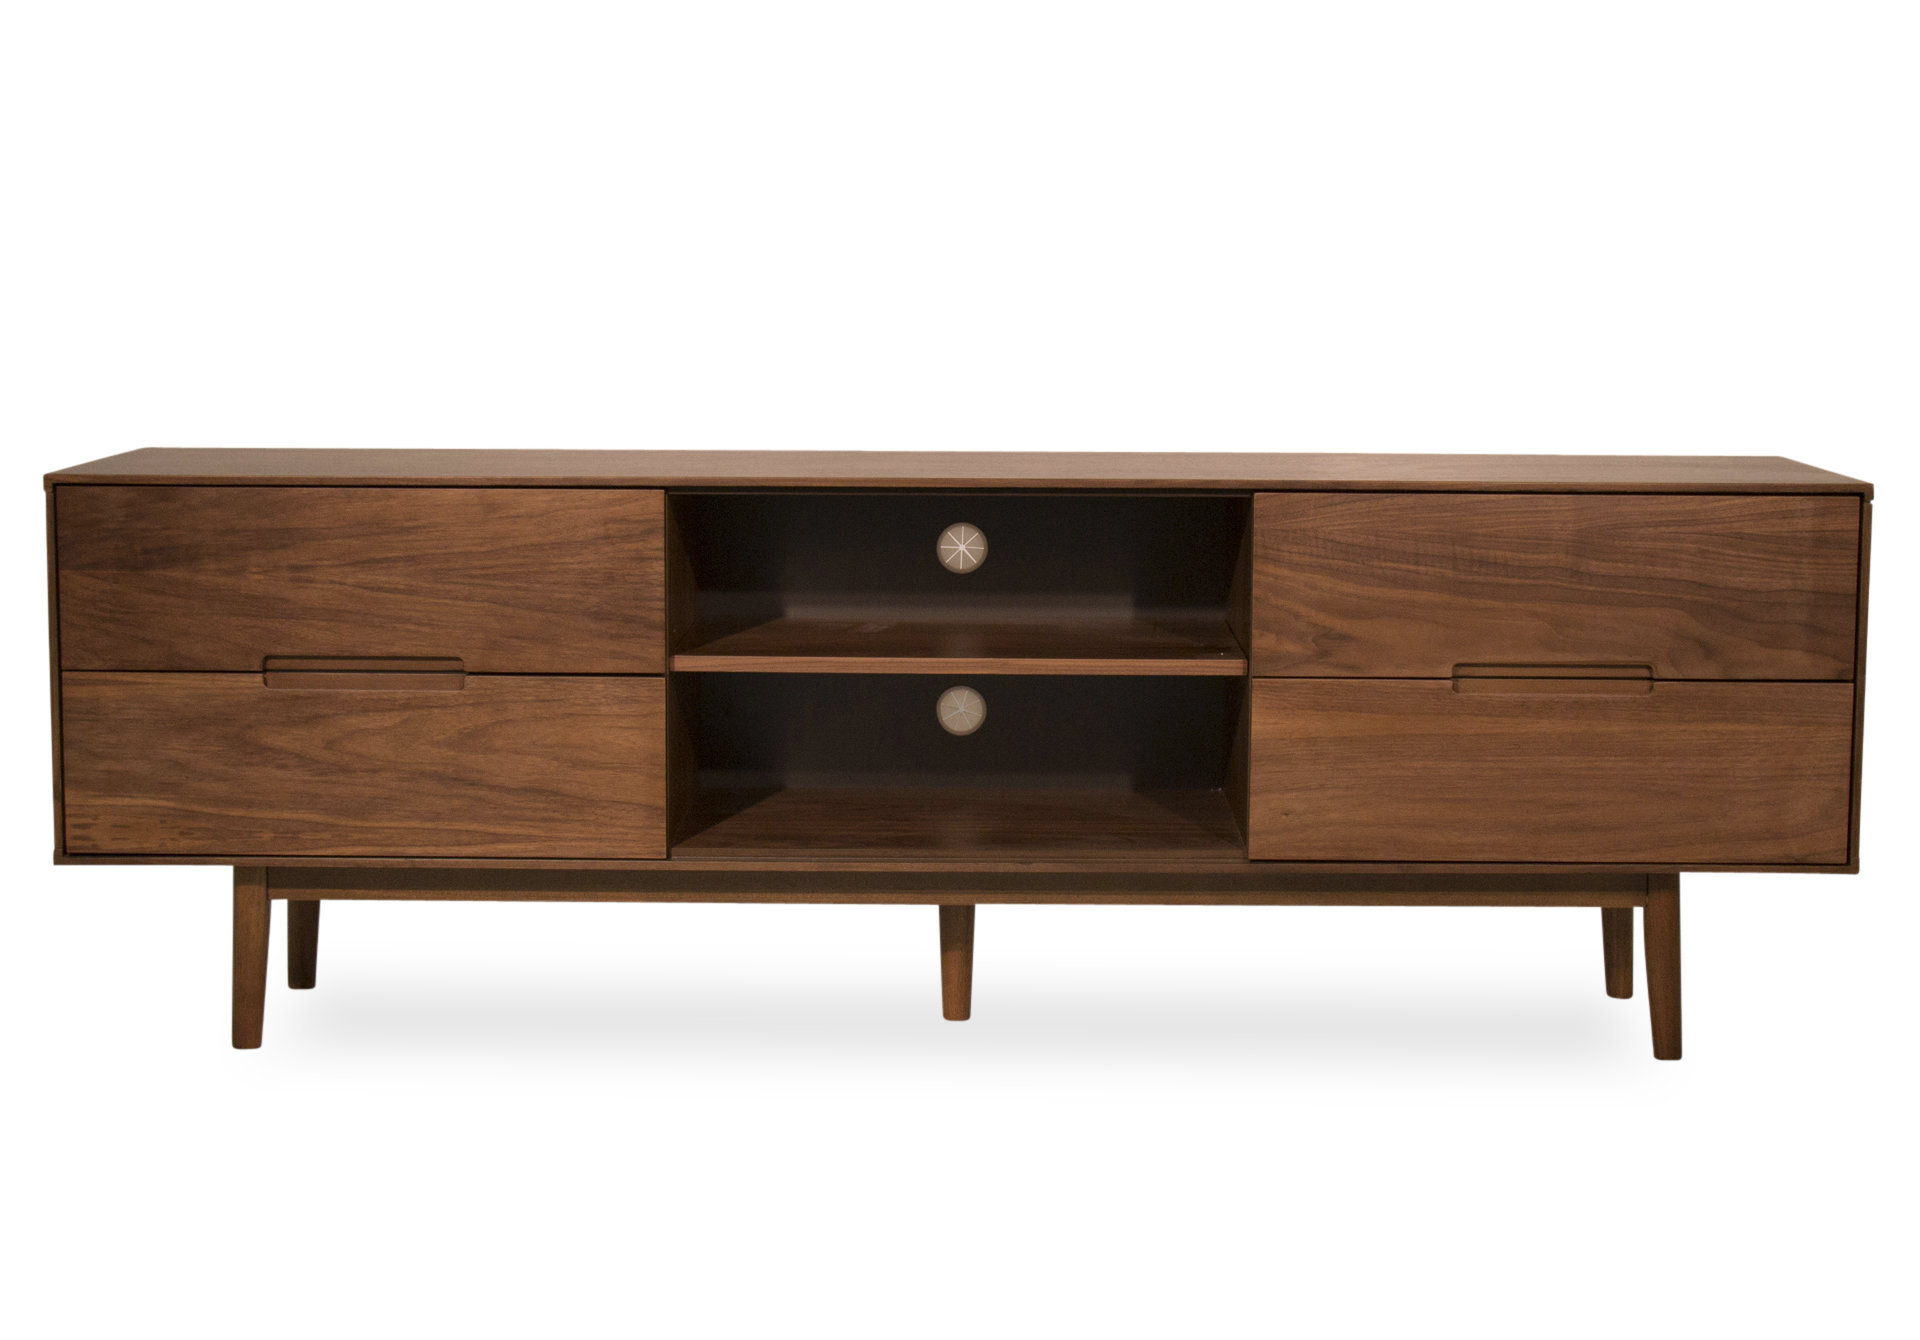 Allmodern Throughout Most Recent Wakefield 85 Inch Tv Stands (View 1 of 20)